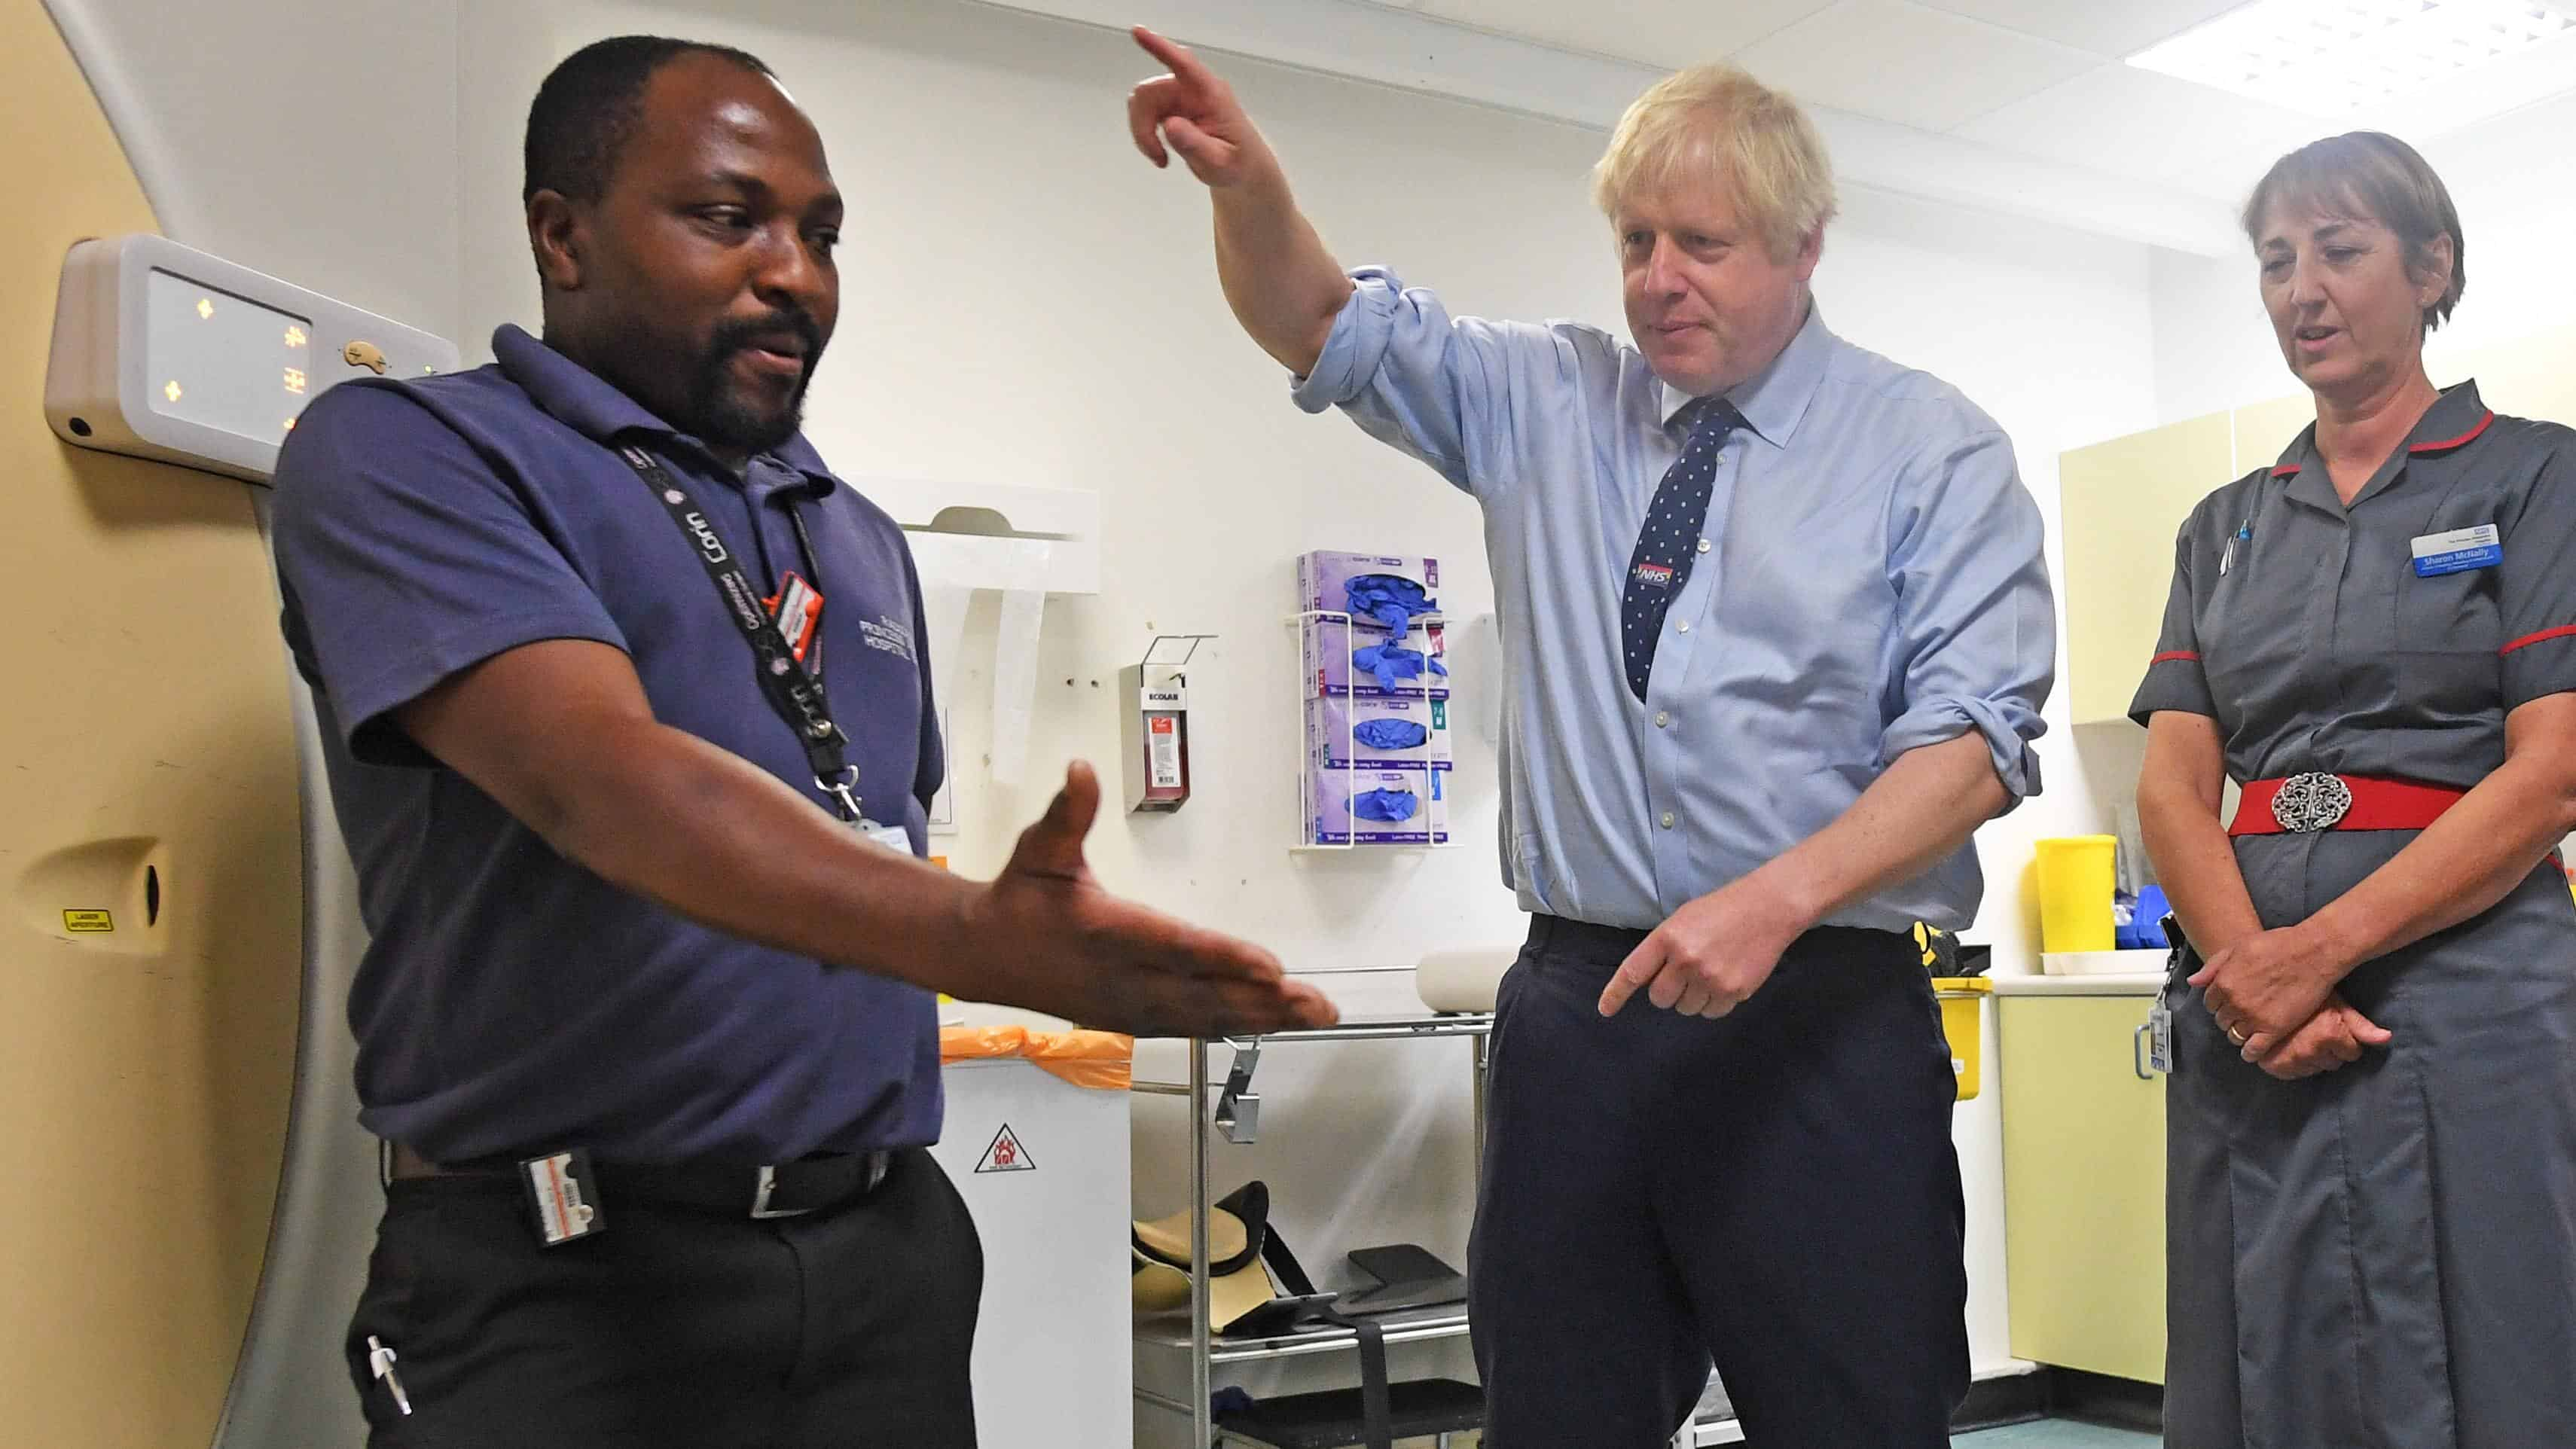 Boris Johnson hospital visit